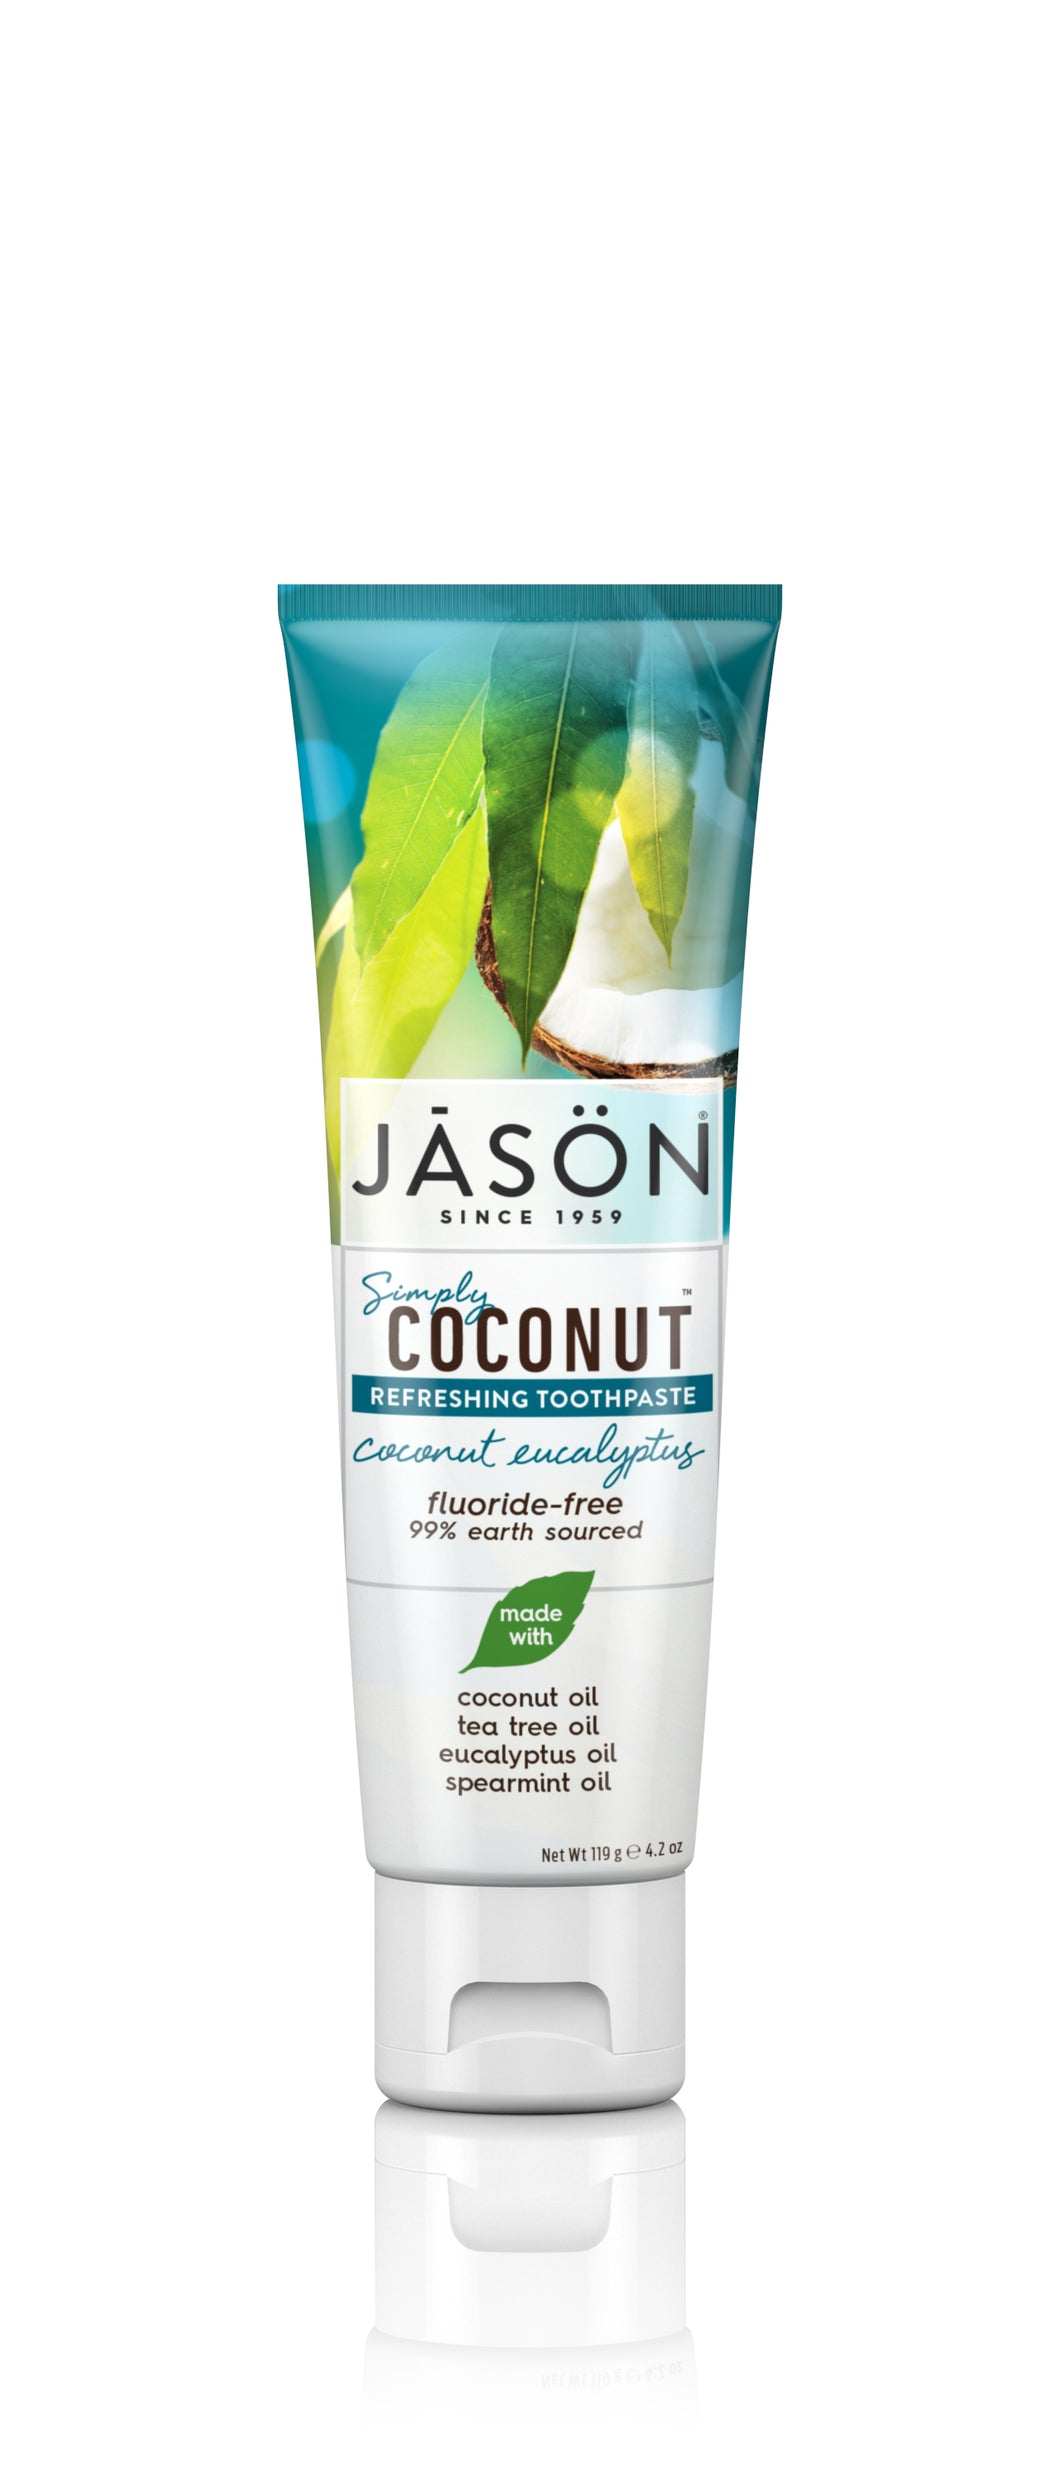 Simply Coconut™ Refreshing Toothpaste Coconut Eucalyptus